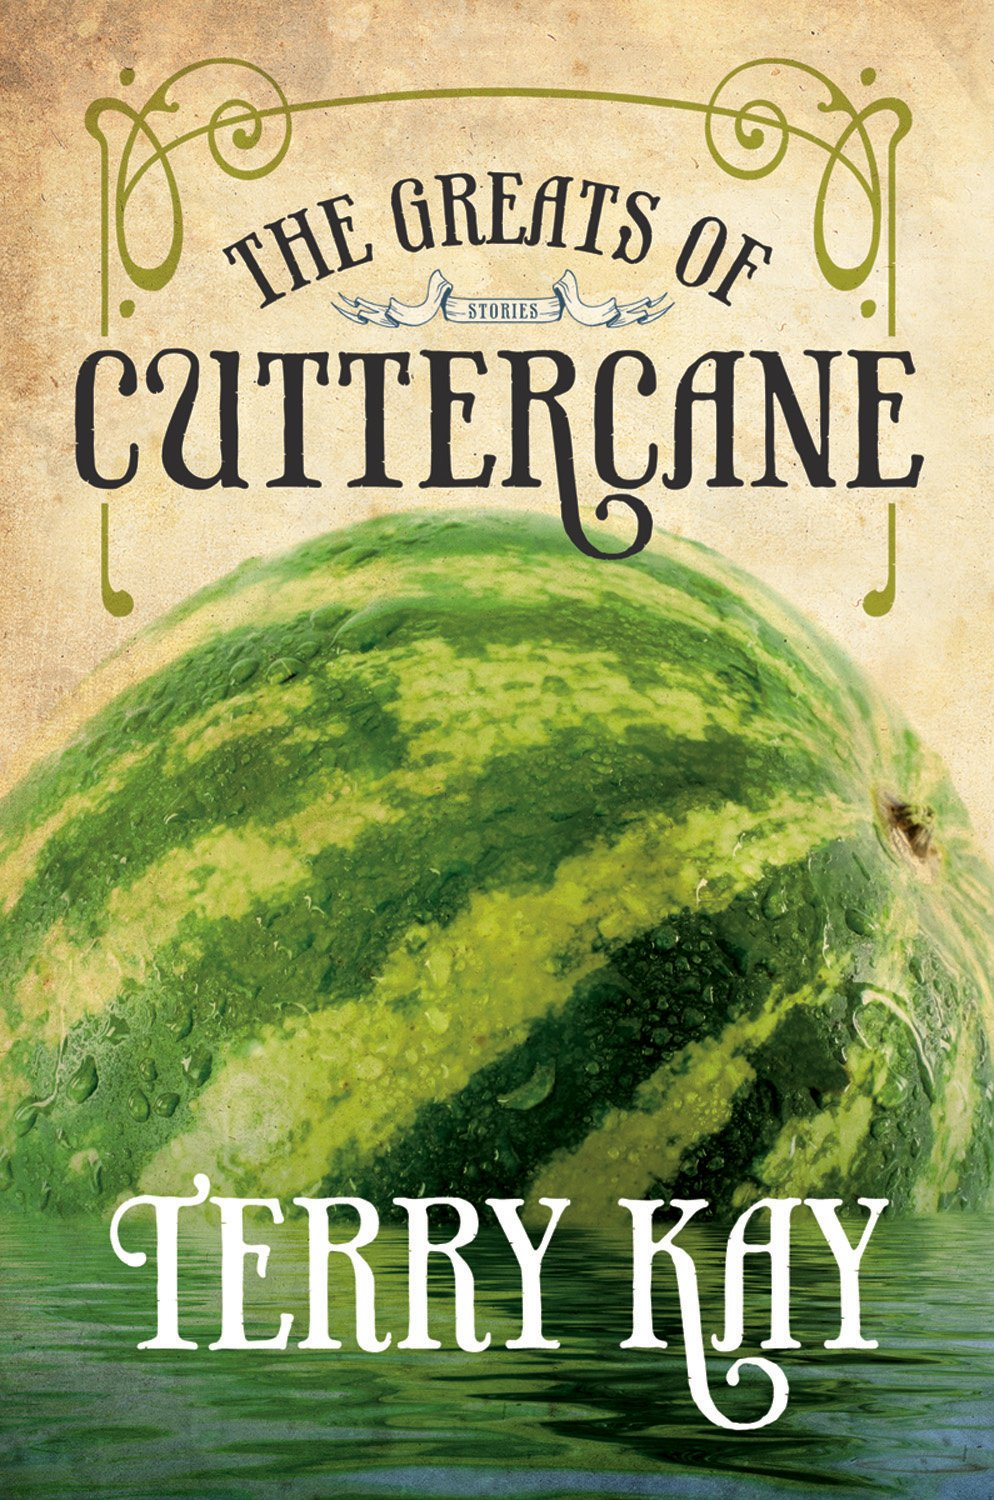 The Greats of Cuttercane: The Southern Stories ebook